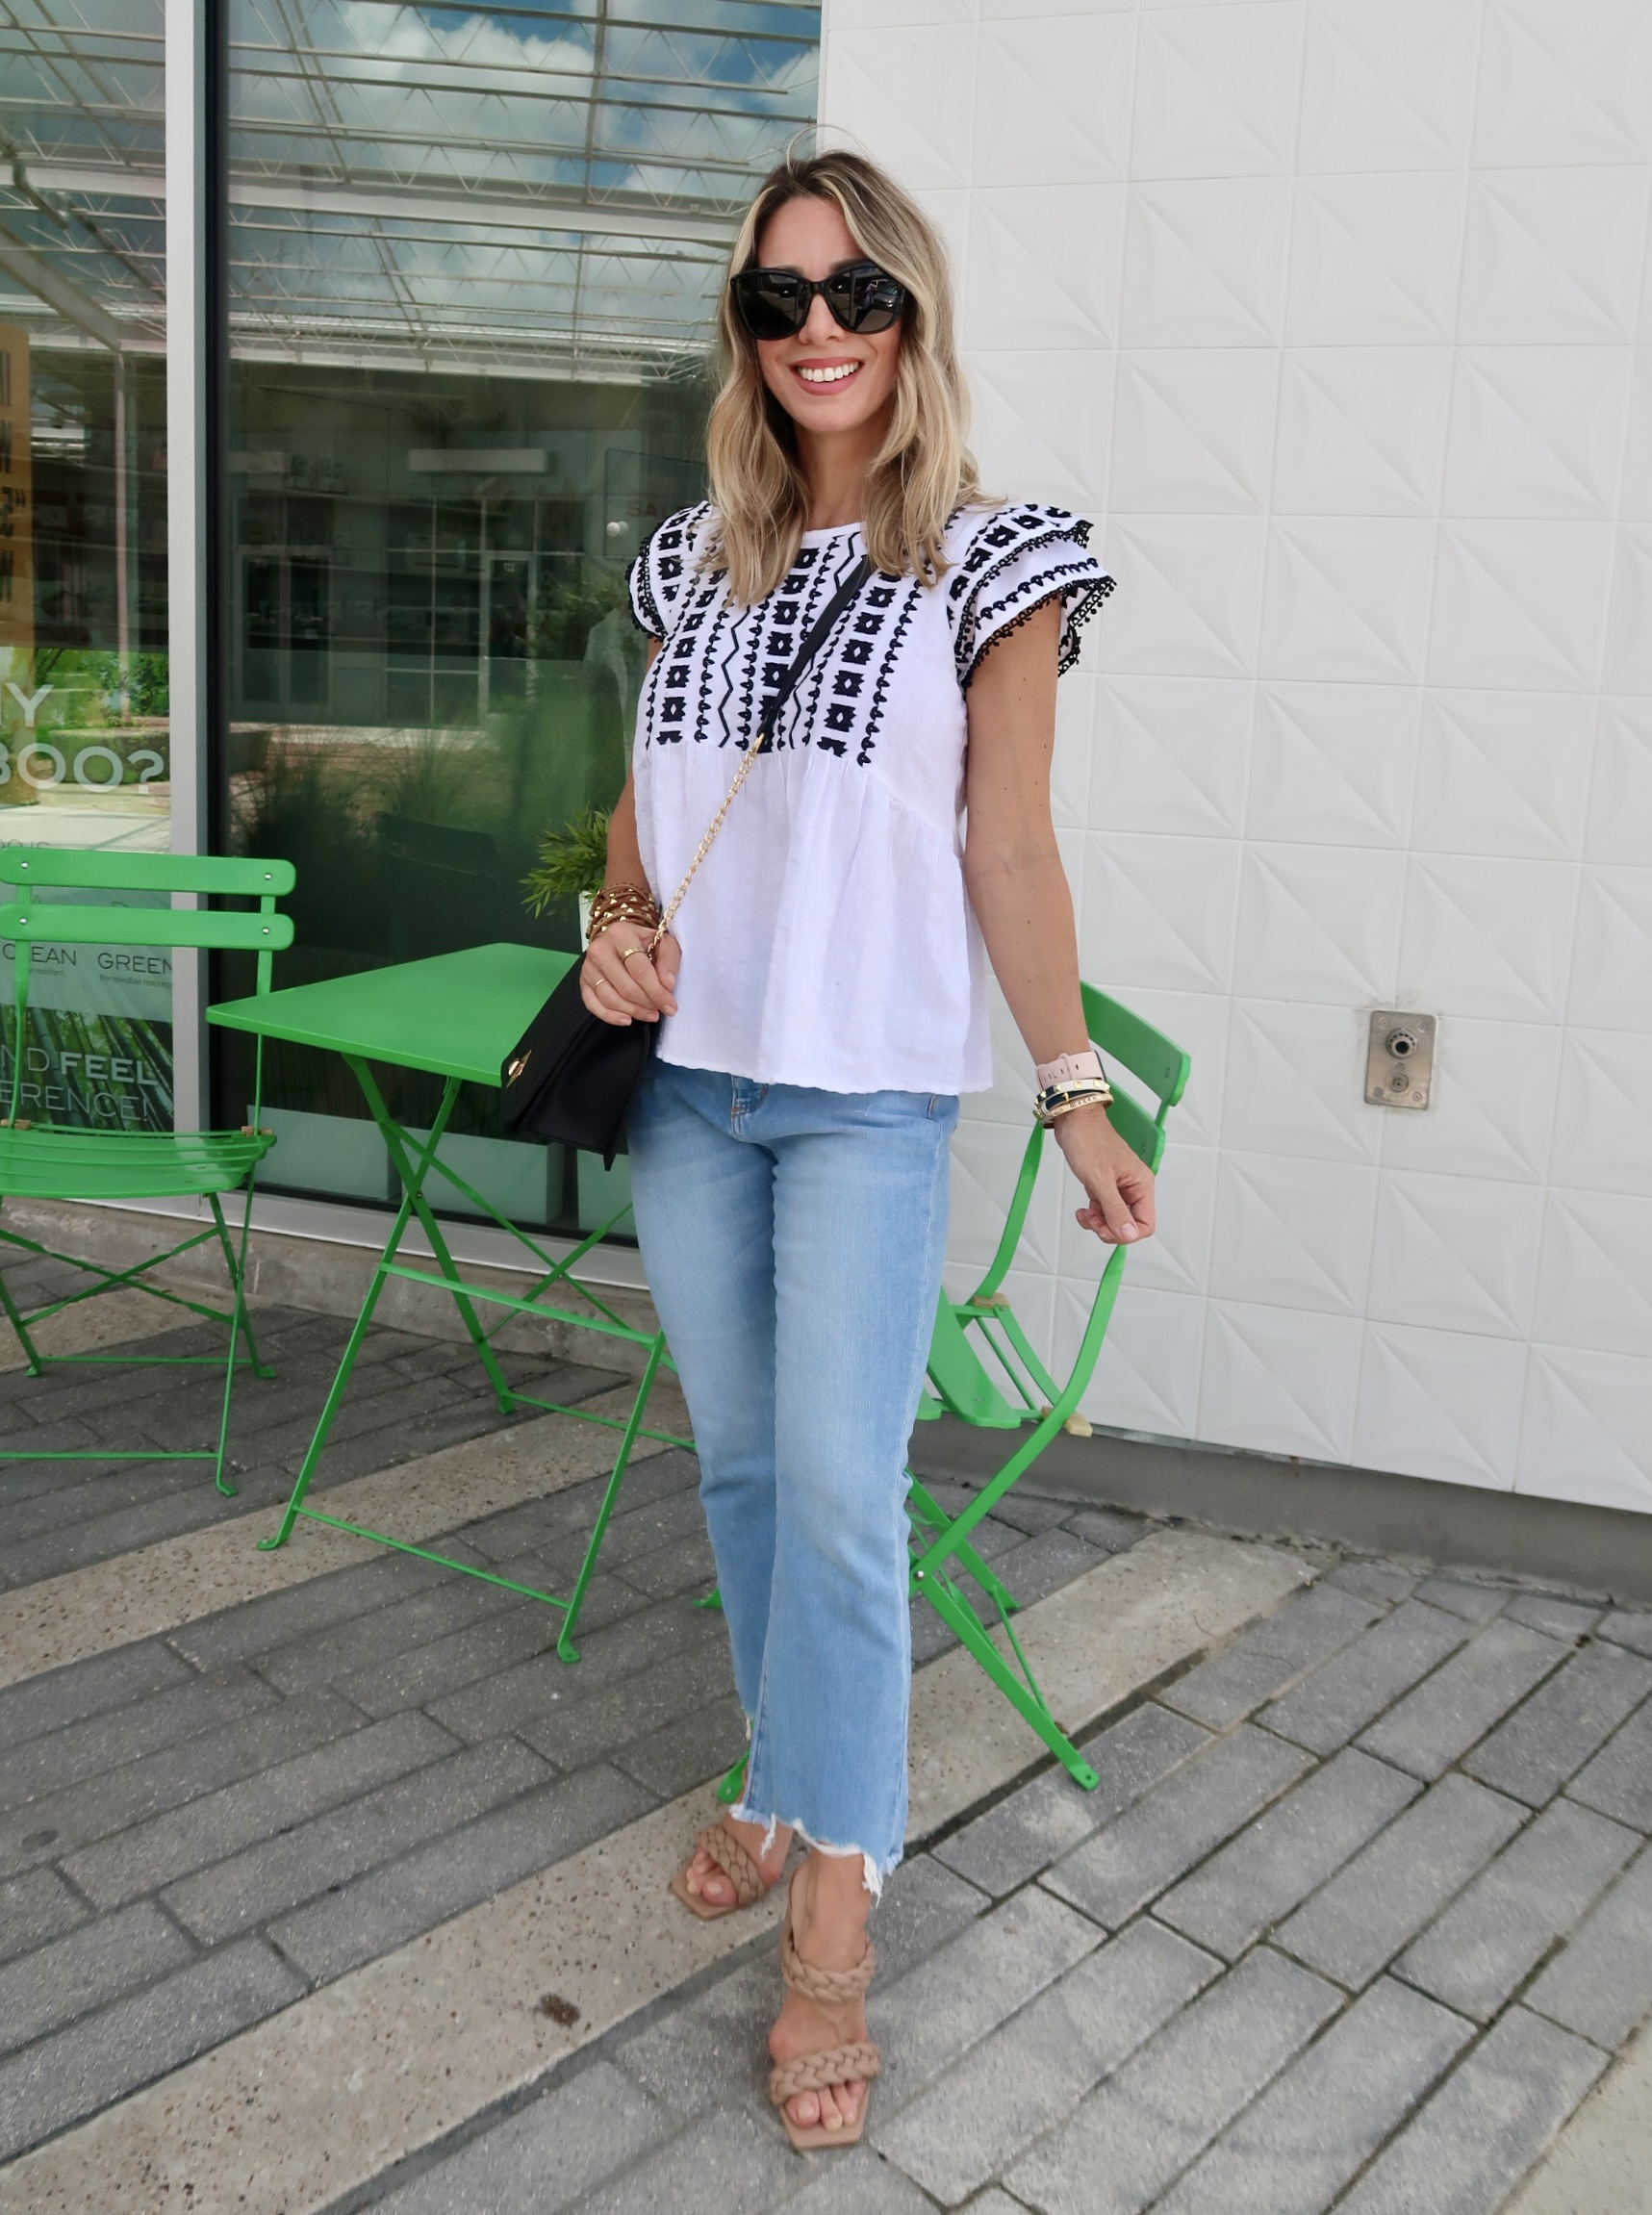 Outfits Lately, Embroidered Top, Jeans, Sandals, Crossbody